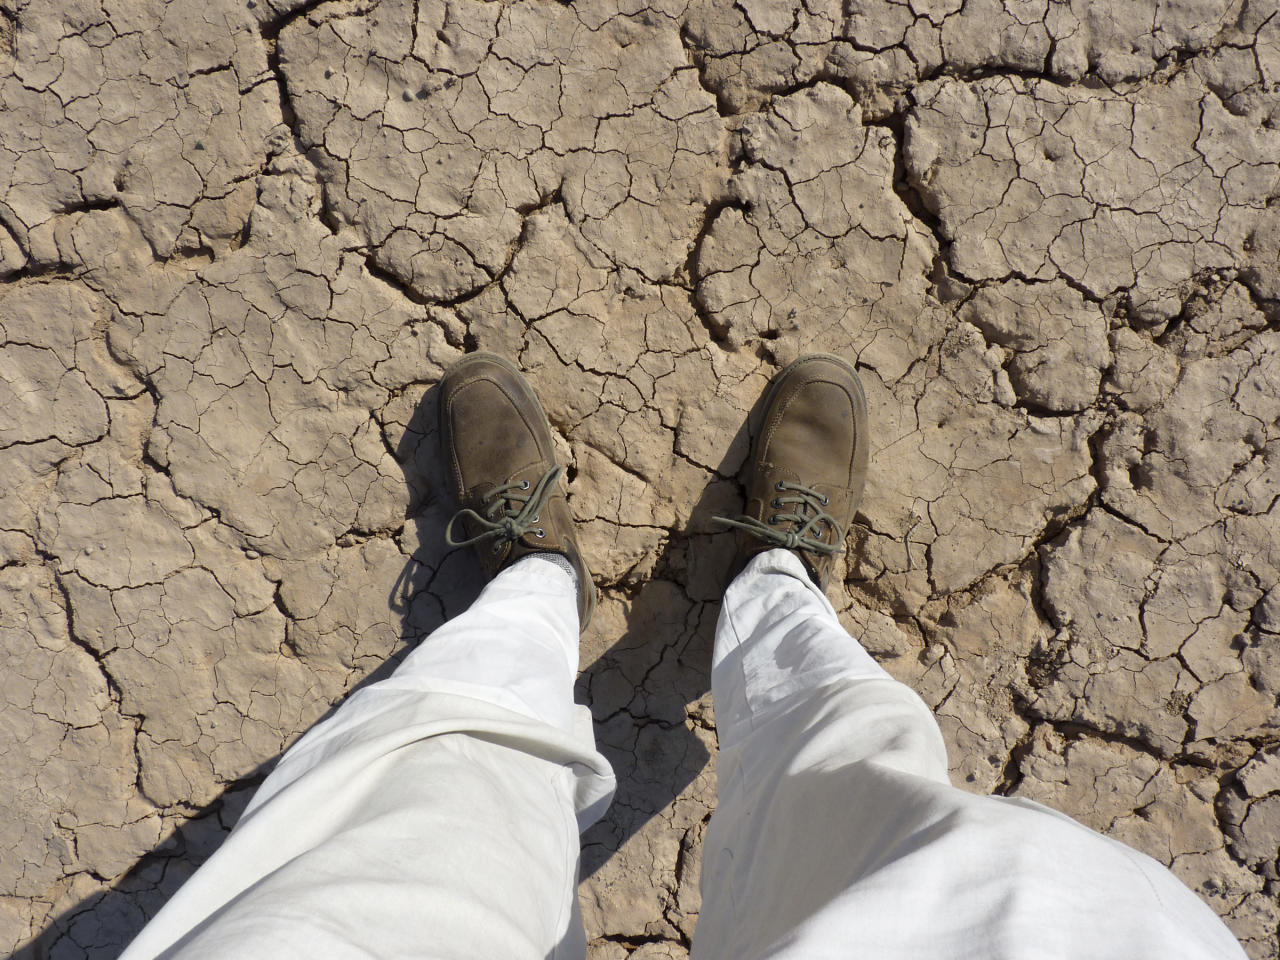 This photo taken Tuesday, Oct. 23, 2012 and released by the National Geographic Society on Thursday, Jan. 10, 2013, shows Paul Salopek standing on the desert flats in Djibouti. Two-time Pulitzer Prize-winning reporter Paul Salopek has taken the first steps of an unimaginably long walk - a 21,000-mile (34,000-kilometer) journey from Ethiopia to Argentina expected to last seven years. (AP Photo/National Geographic, Paul Salopek) NO SALES, ONE TIME USE ONLY NO ARCHIVE